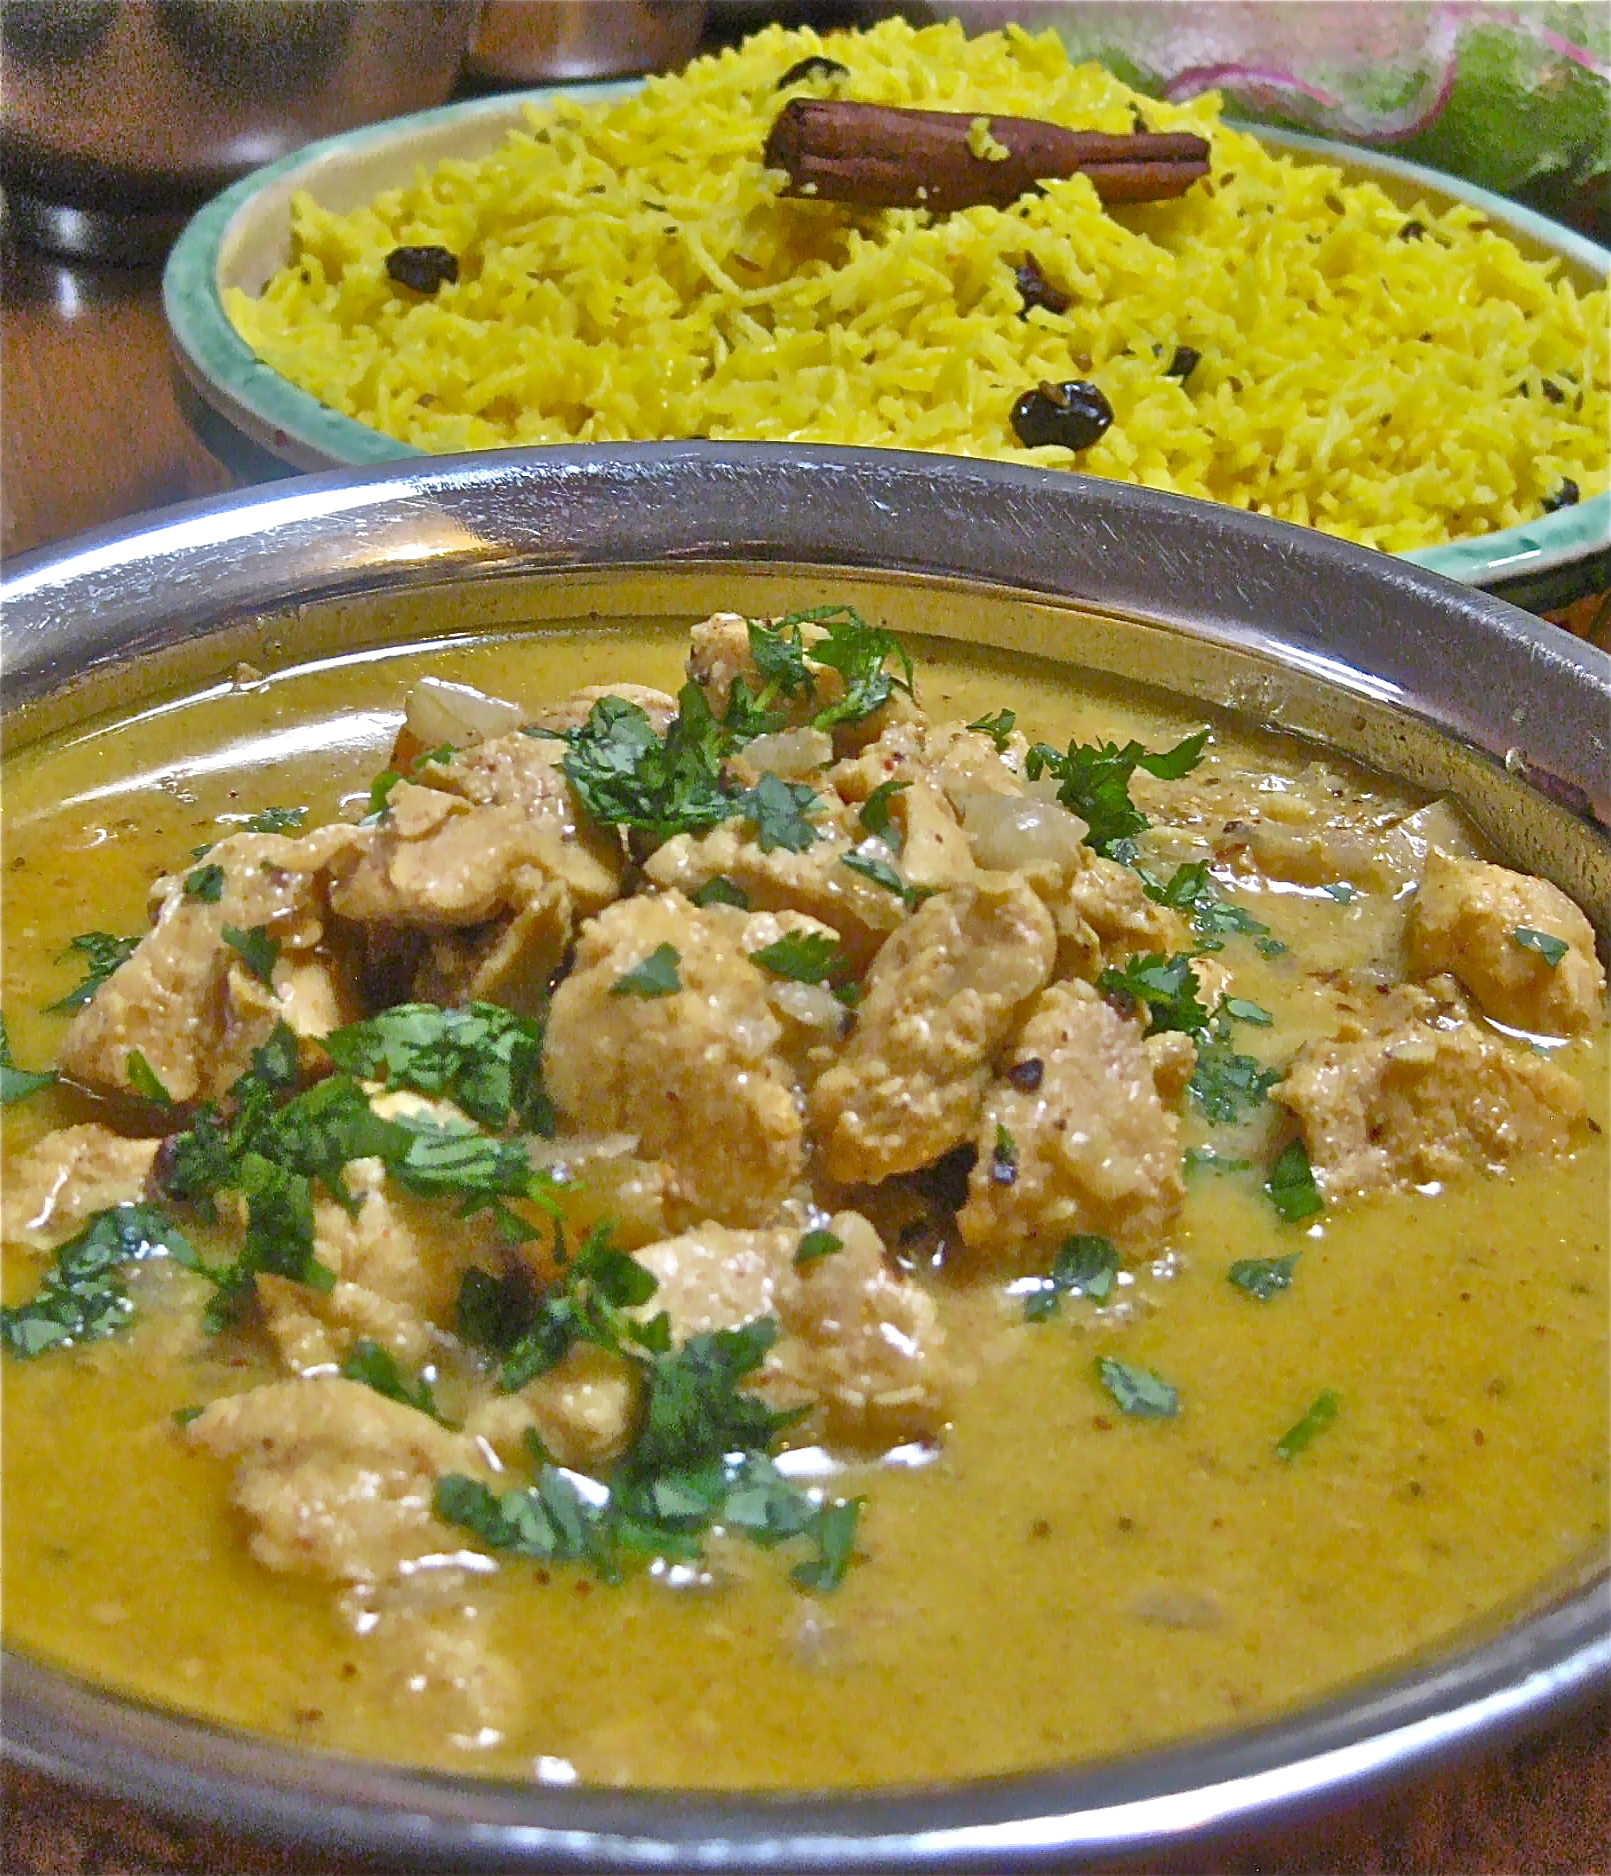 Mughlai Cuisine and a Gentle Chicken Korma